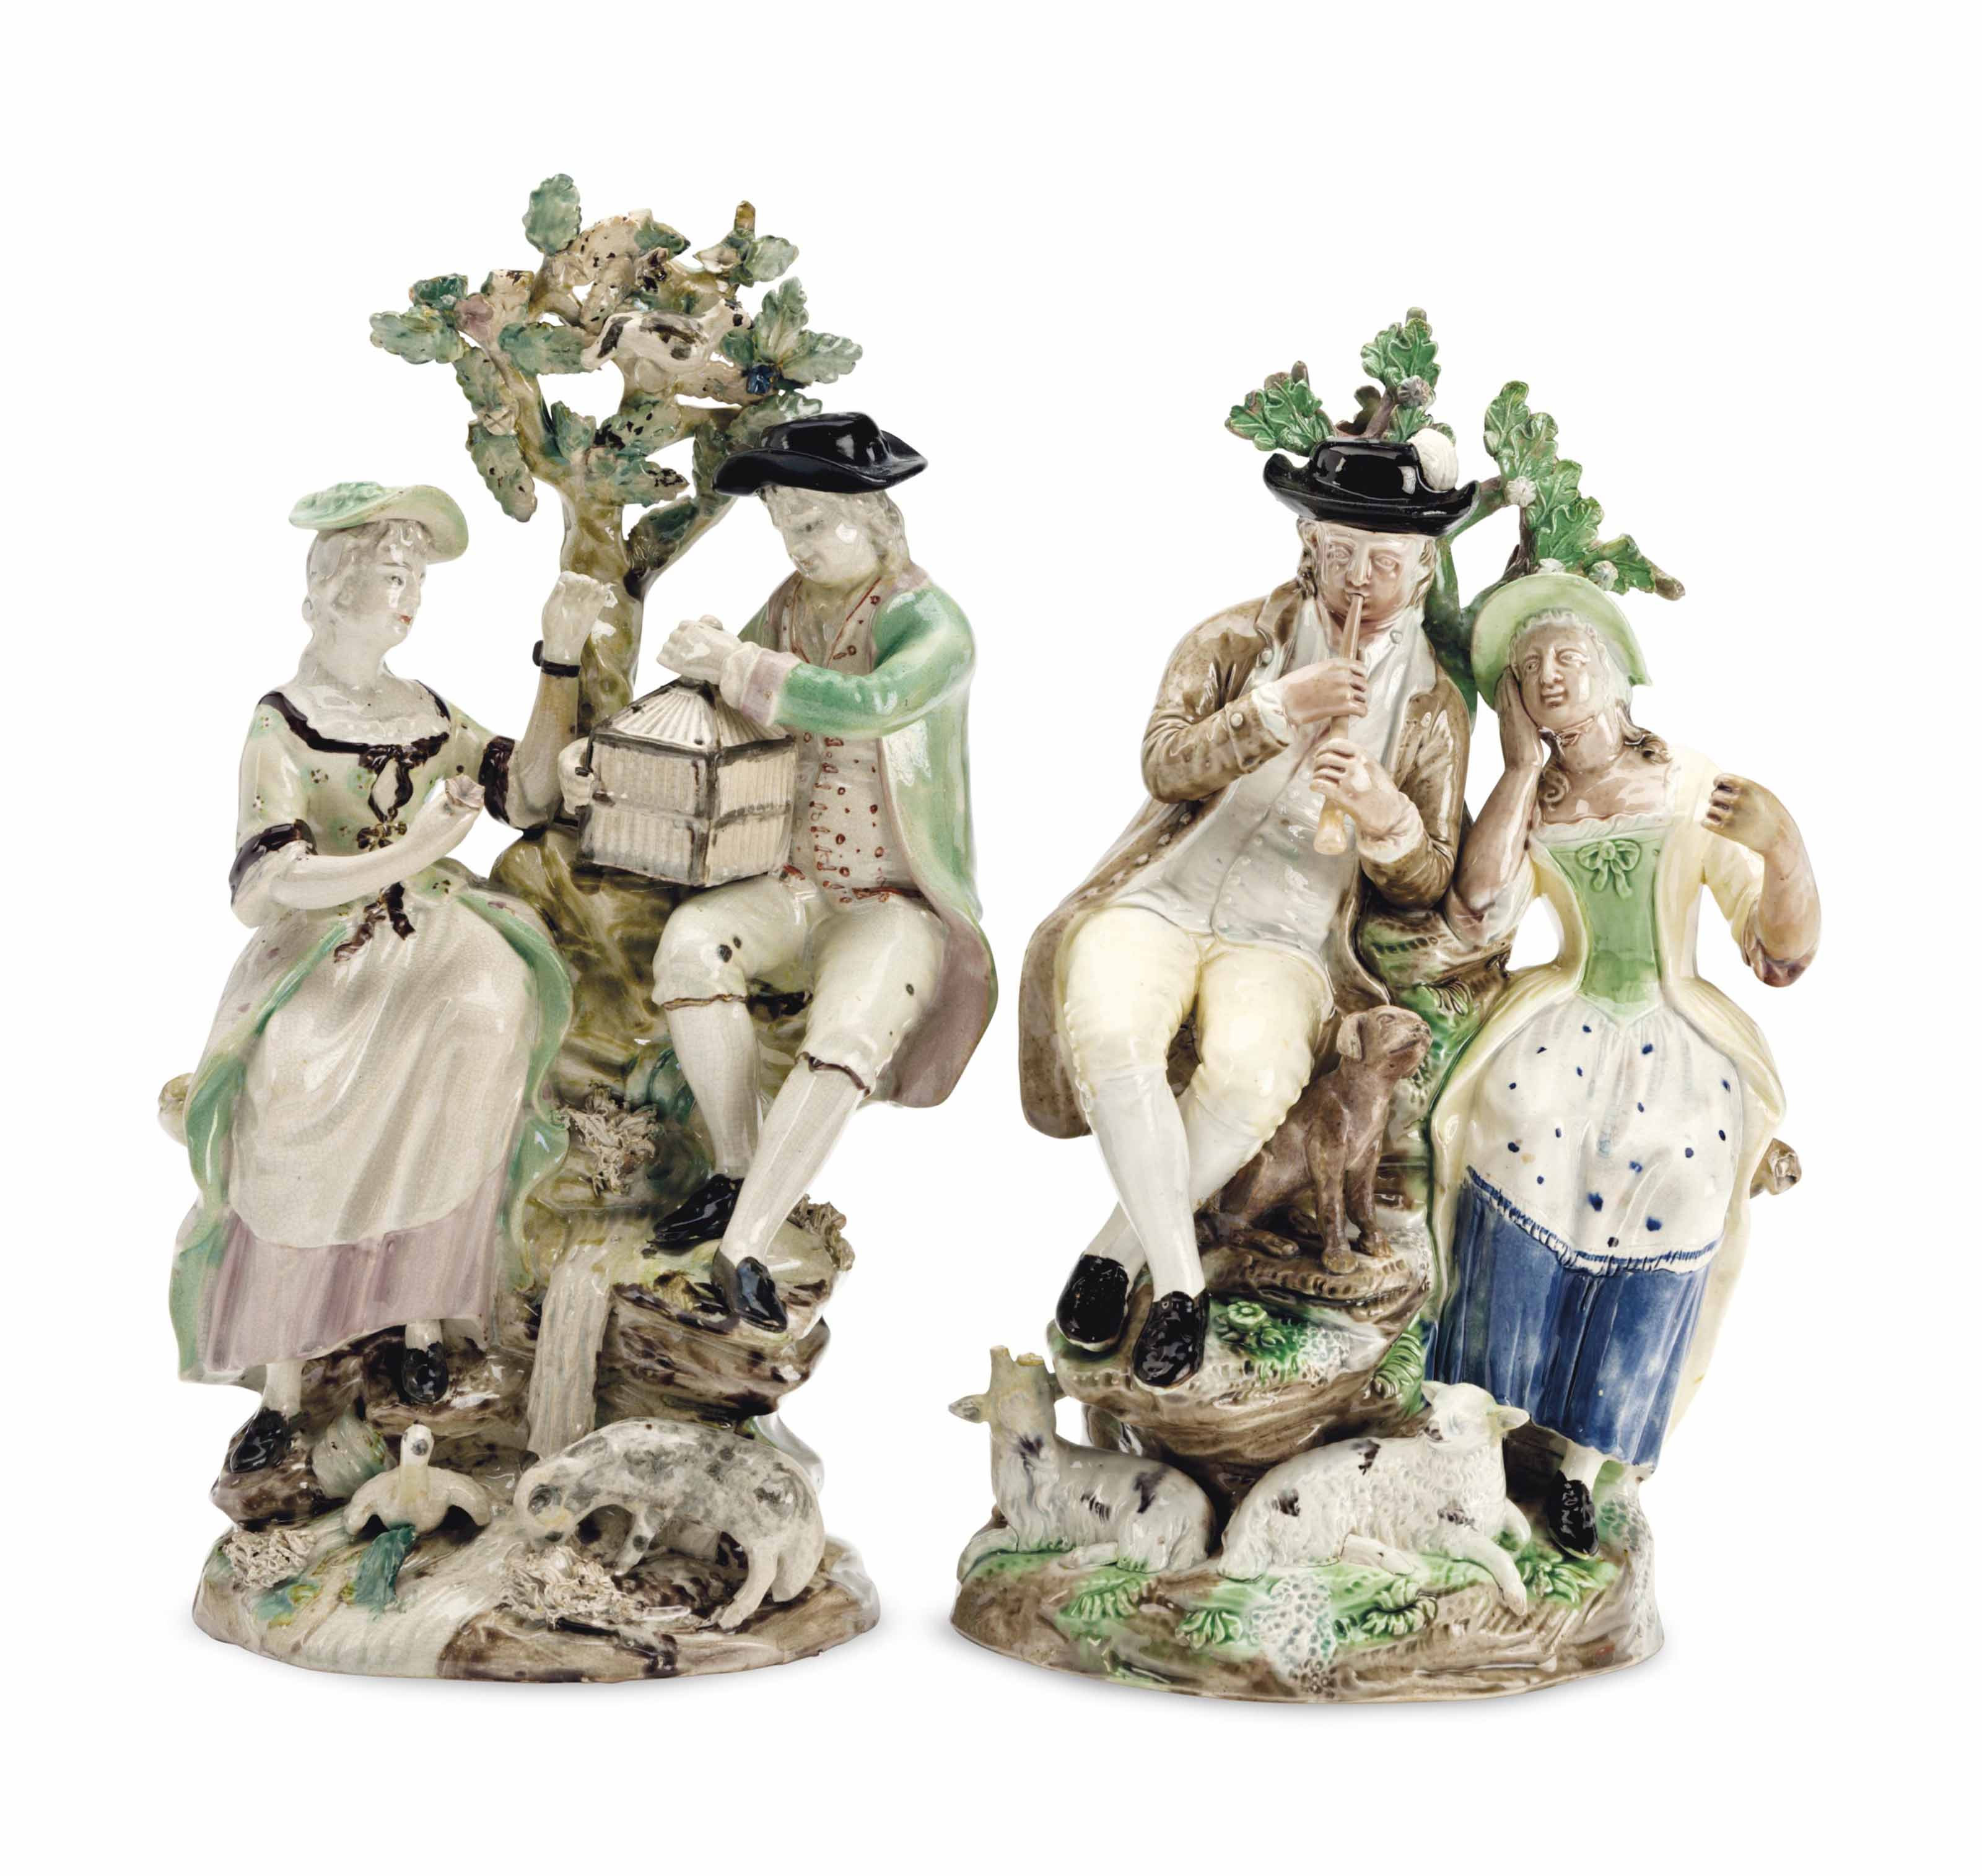 A PAIR OF CREAMWARE FIGURES OF